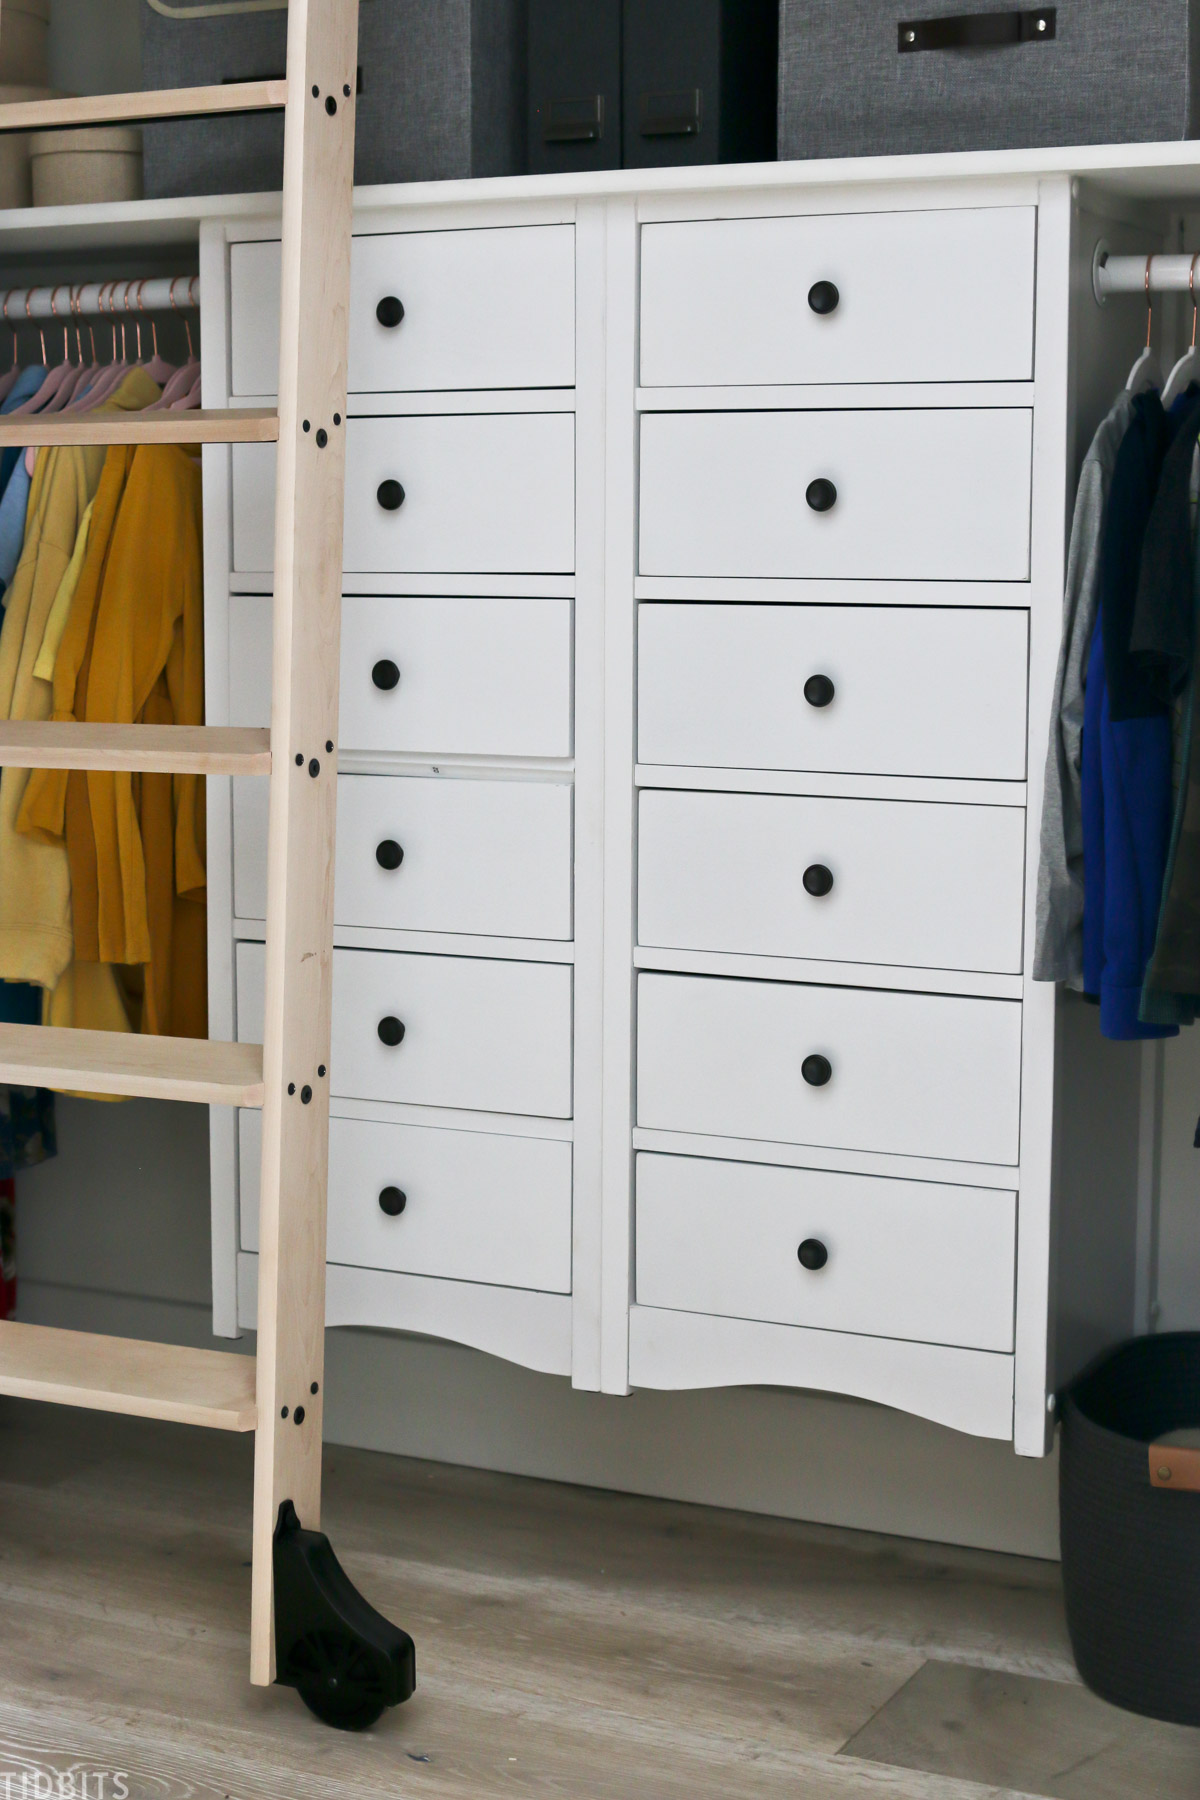 two tall, white dressers installed in a walk in closet